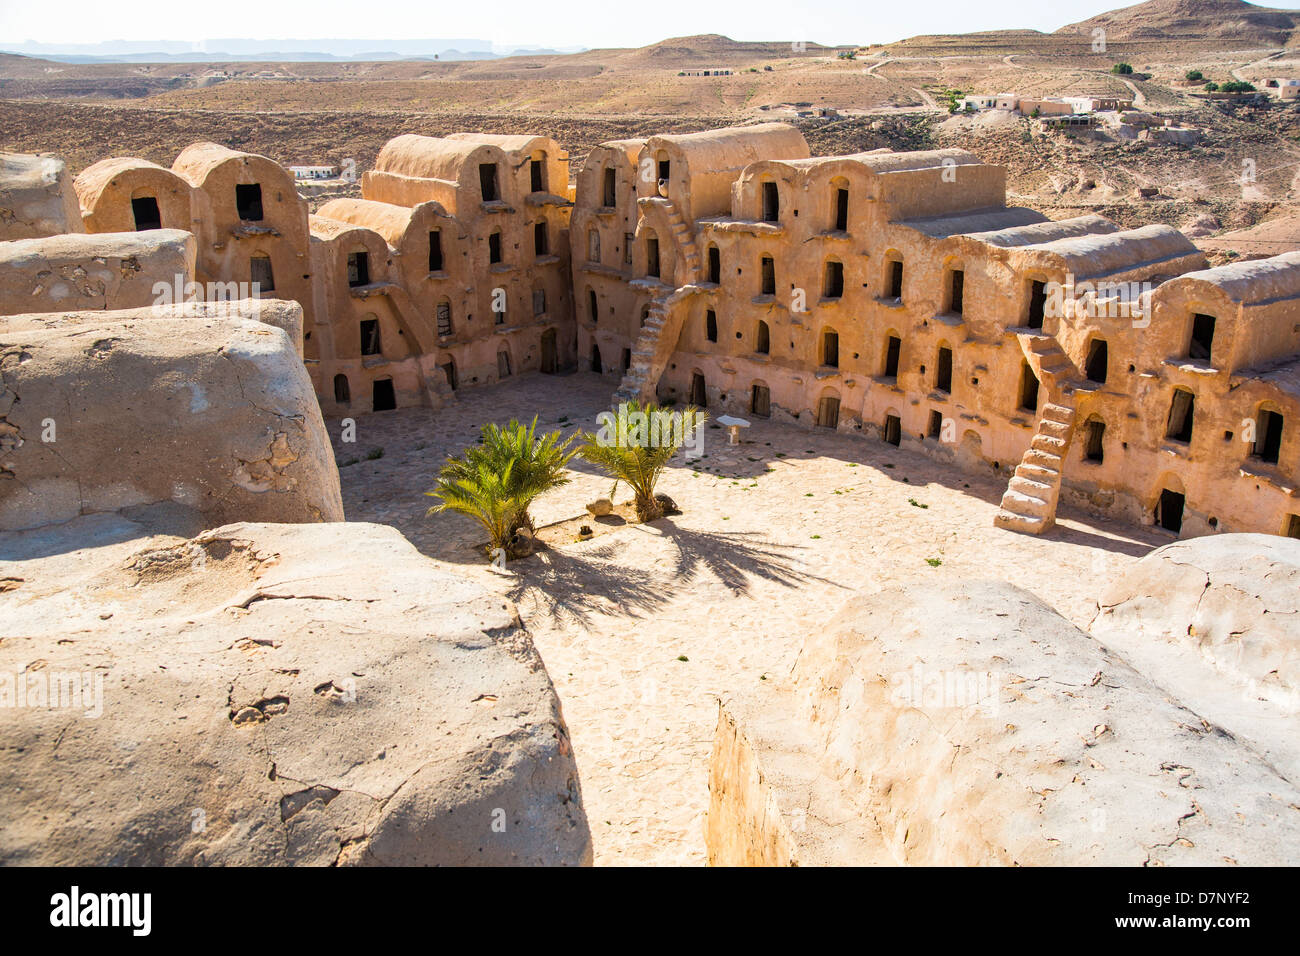 Ksar Ouled Soltane near Tataouine Tunisia Stock Photo